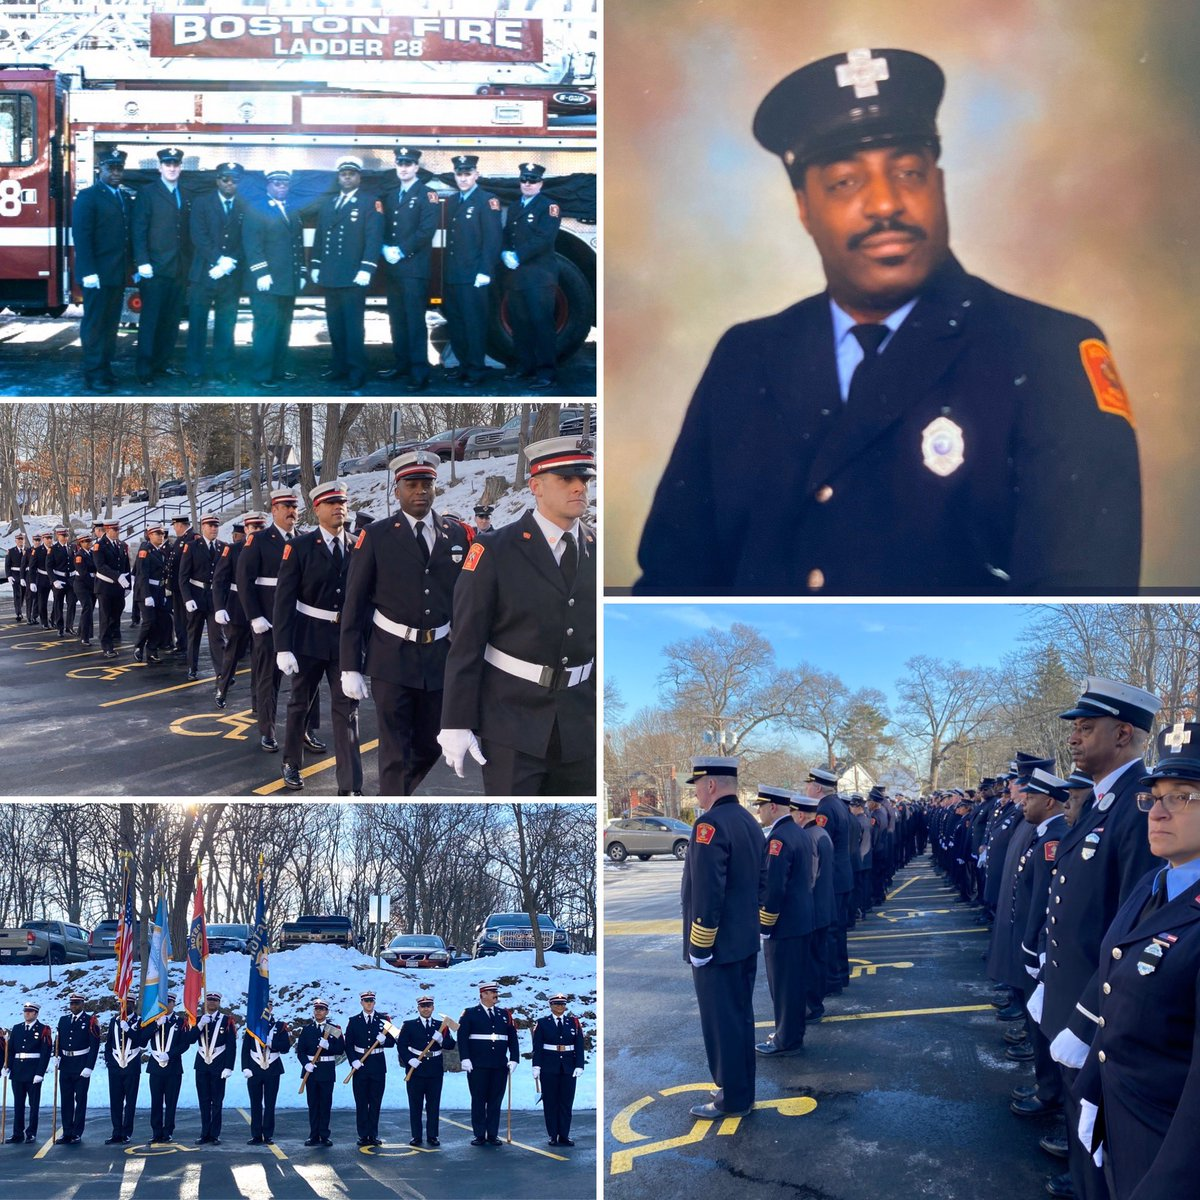 Today we said  a final goodbye to our brother firefighter Tillman Coy of the Fire Prevention Division, he will be missed Rest In Peace. @ChiefJoeFinn @LOCAL_718 @CityOfBoston<br>http://pic.twitter.com/NexQdlbRss